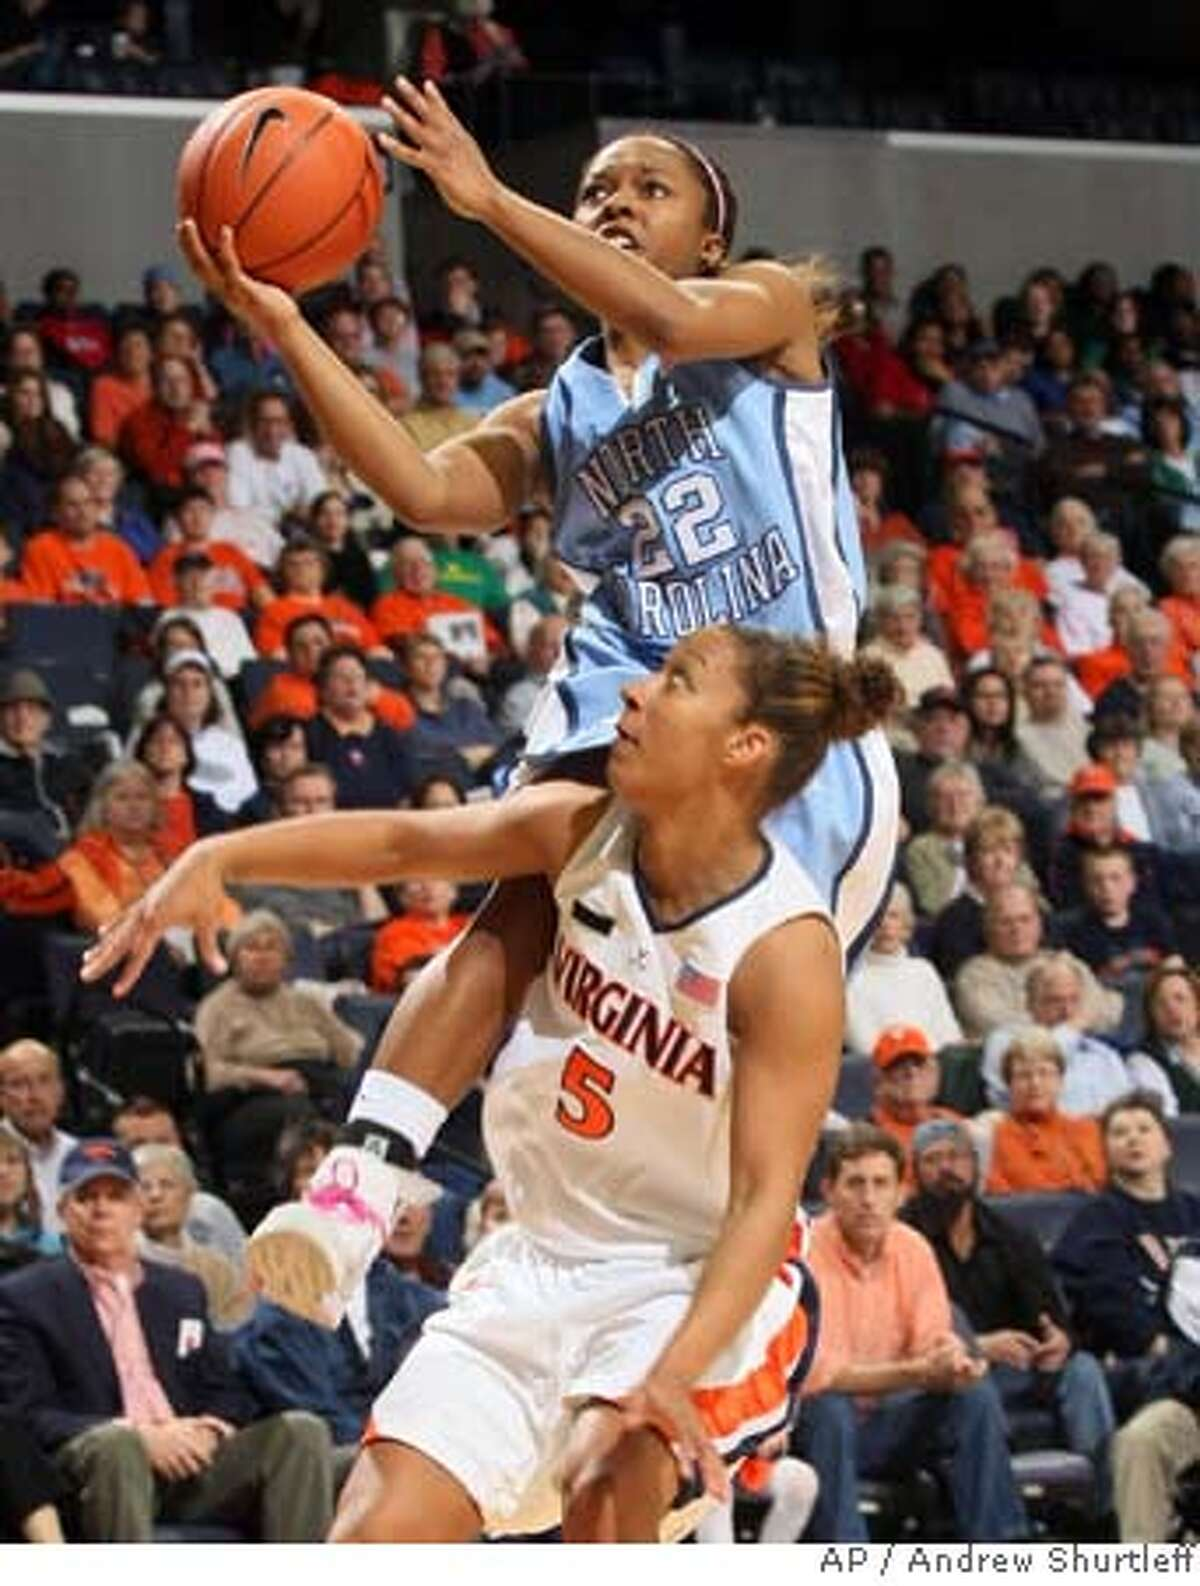 North Carolina's Cetera DeGraffenreid shoots over Virginia's Sharnee Zoll during the first half a basketball game Friday, Feb. 15, 2008, in Charlottesville, Va. (AP Photo/Andrew Shurtleff) EFE OUT